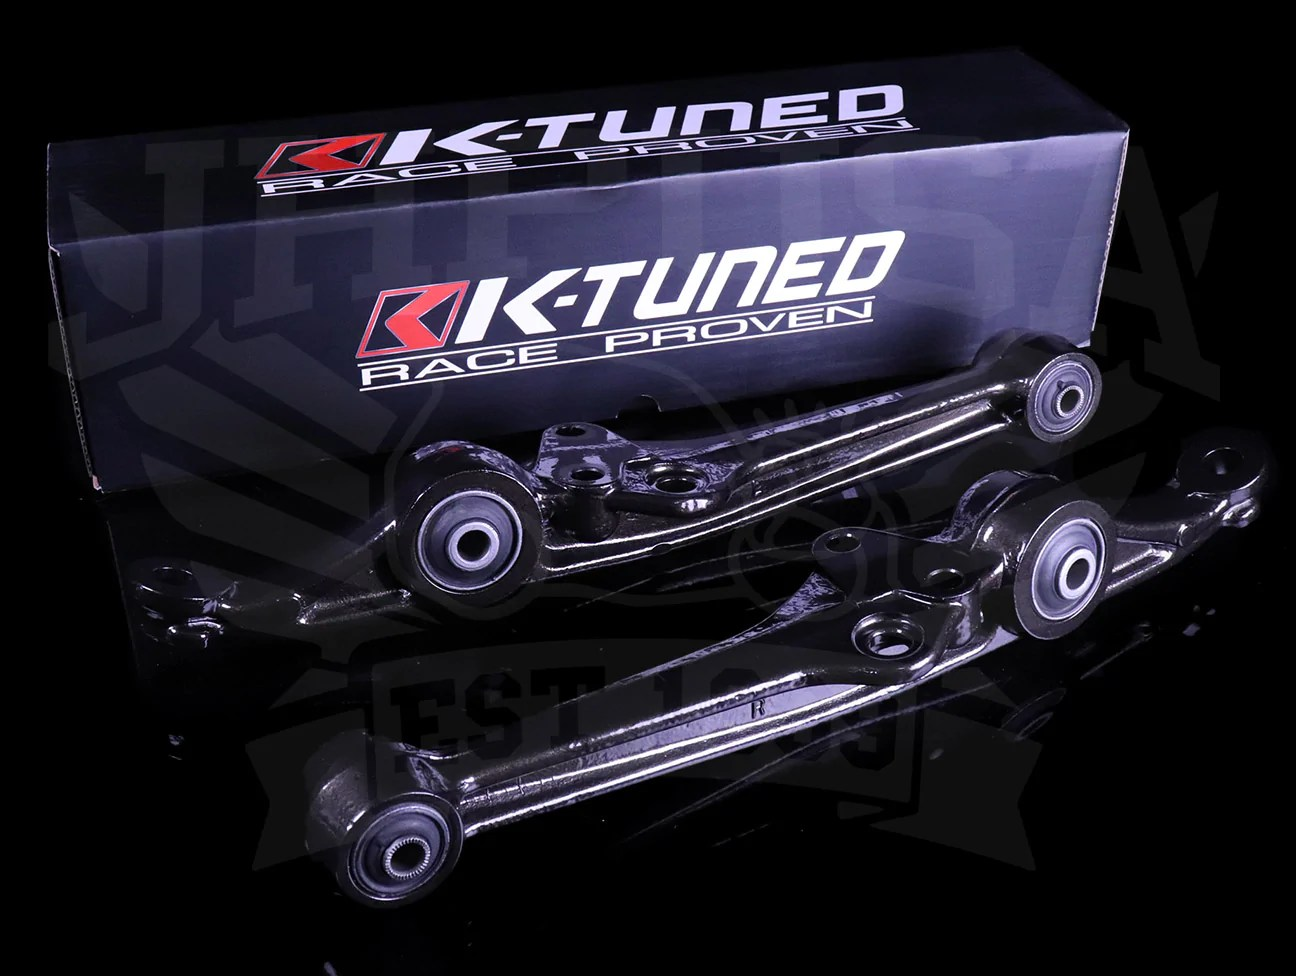 k tuned front lower control arms 88 91 civic crx [ 1296 x 976 Pixel ]